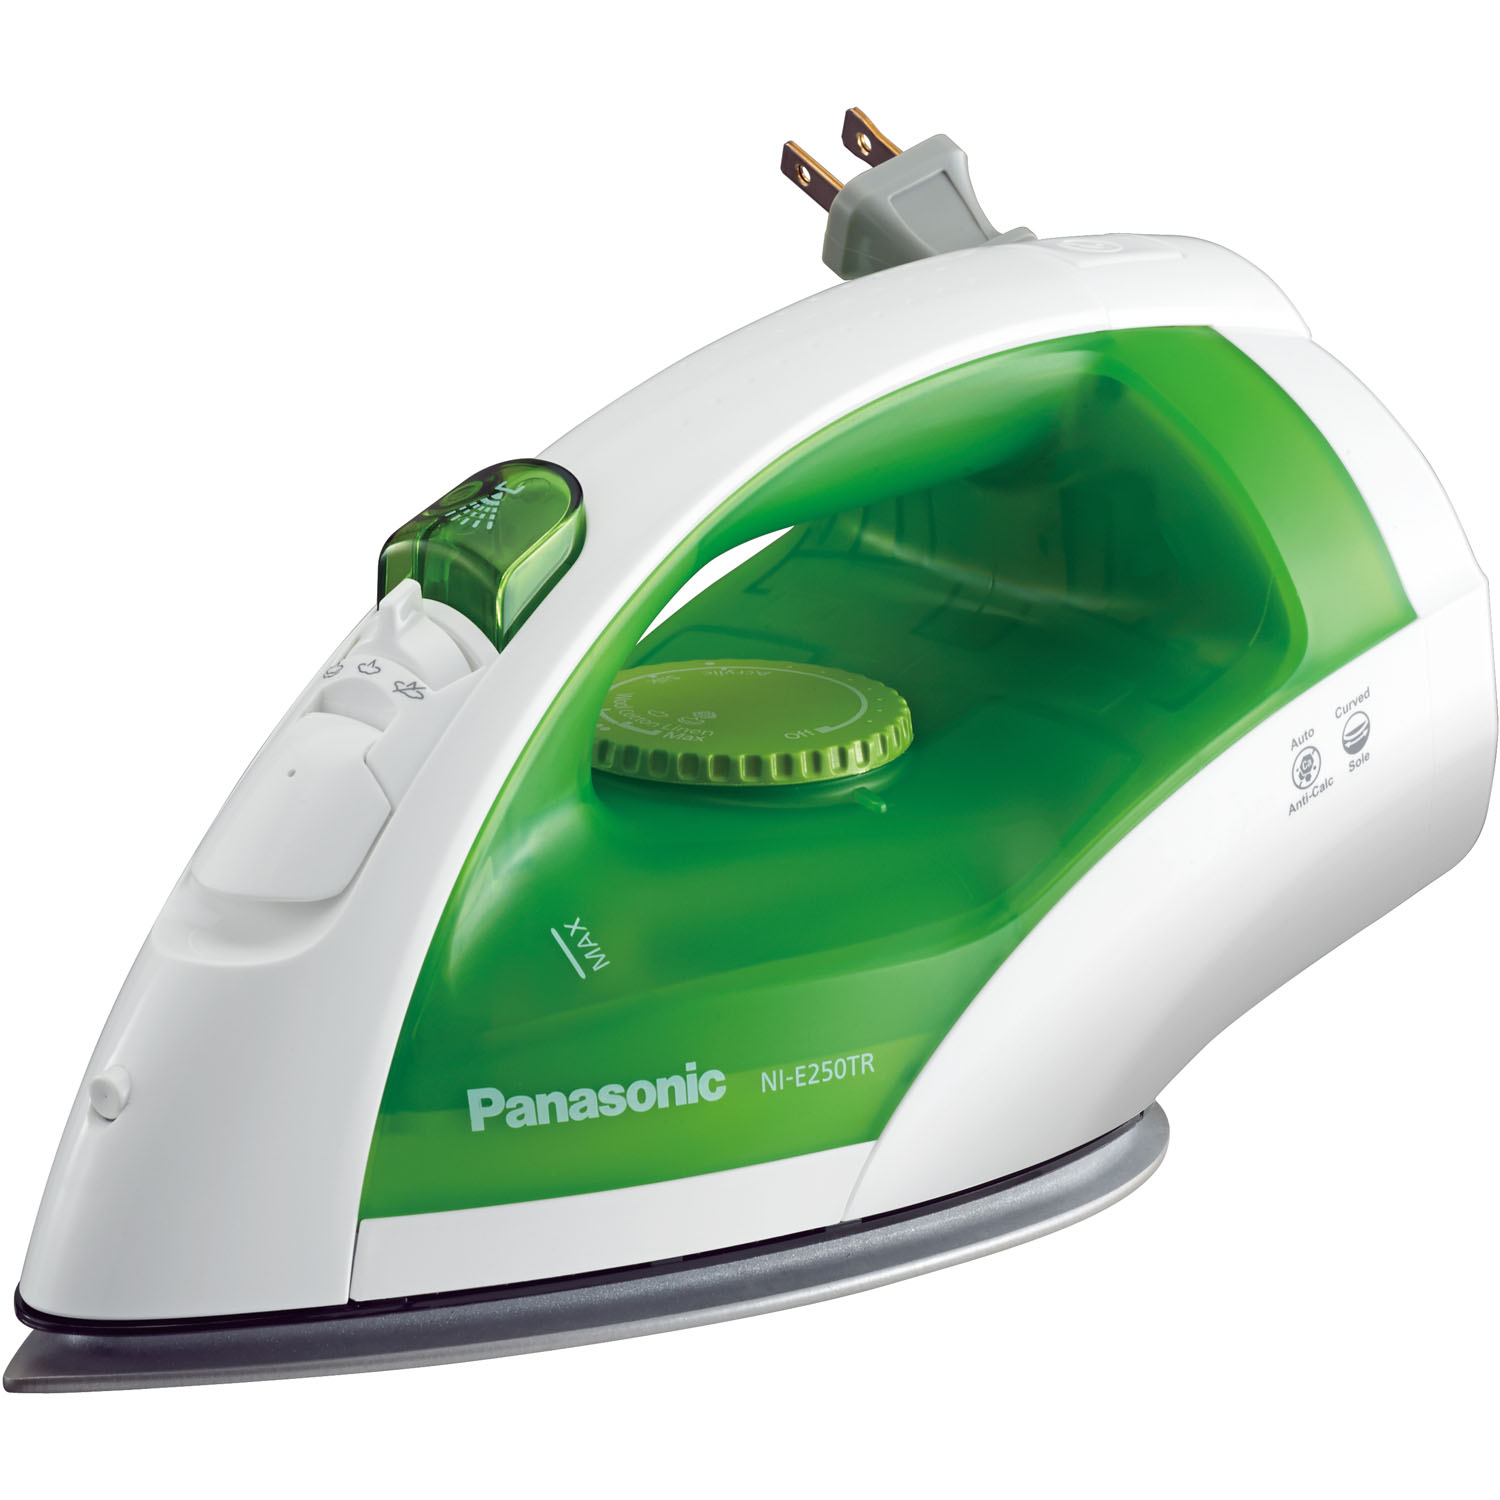 Panasonic Steam Circulating Iron with Curved, Non-Stick Titanium-Finish Soleplate in Green/White